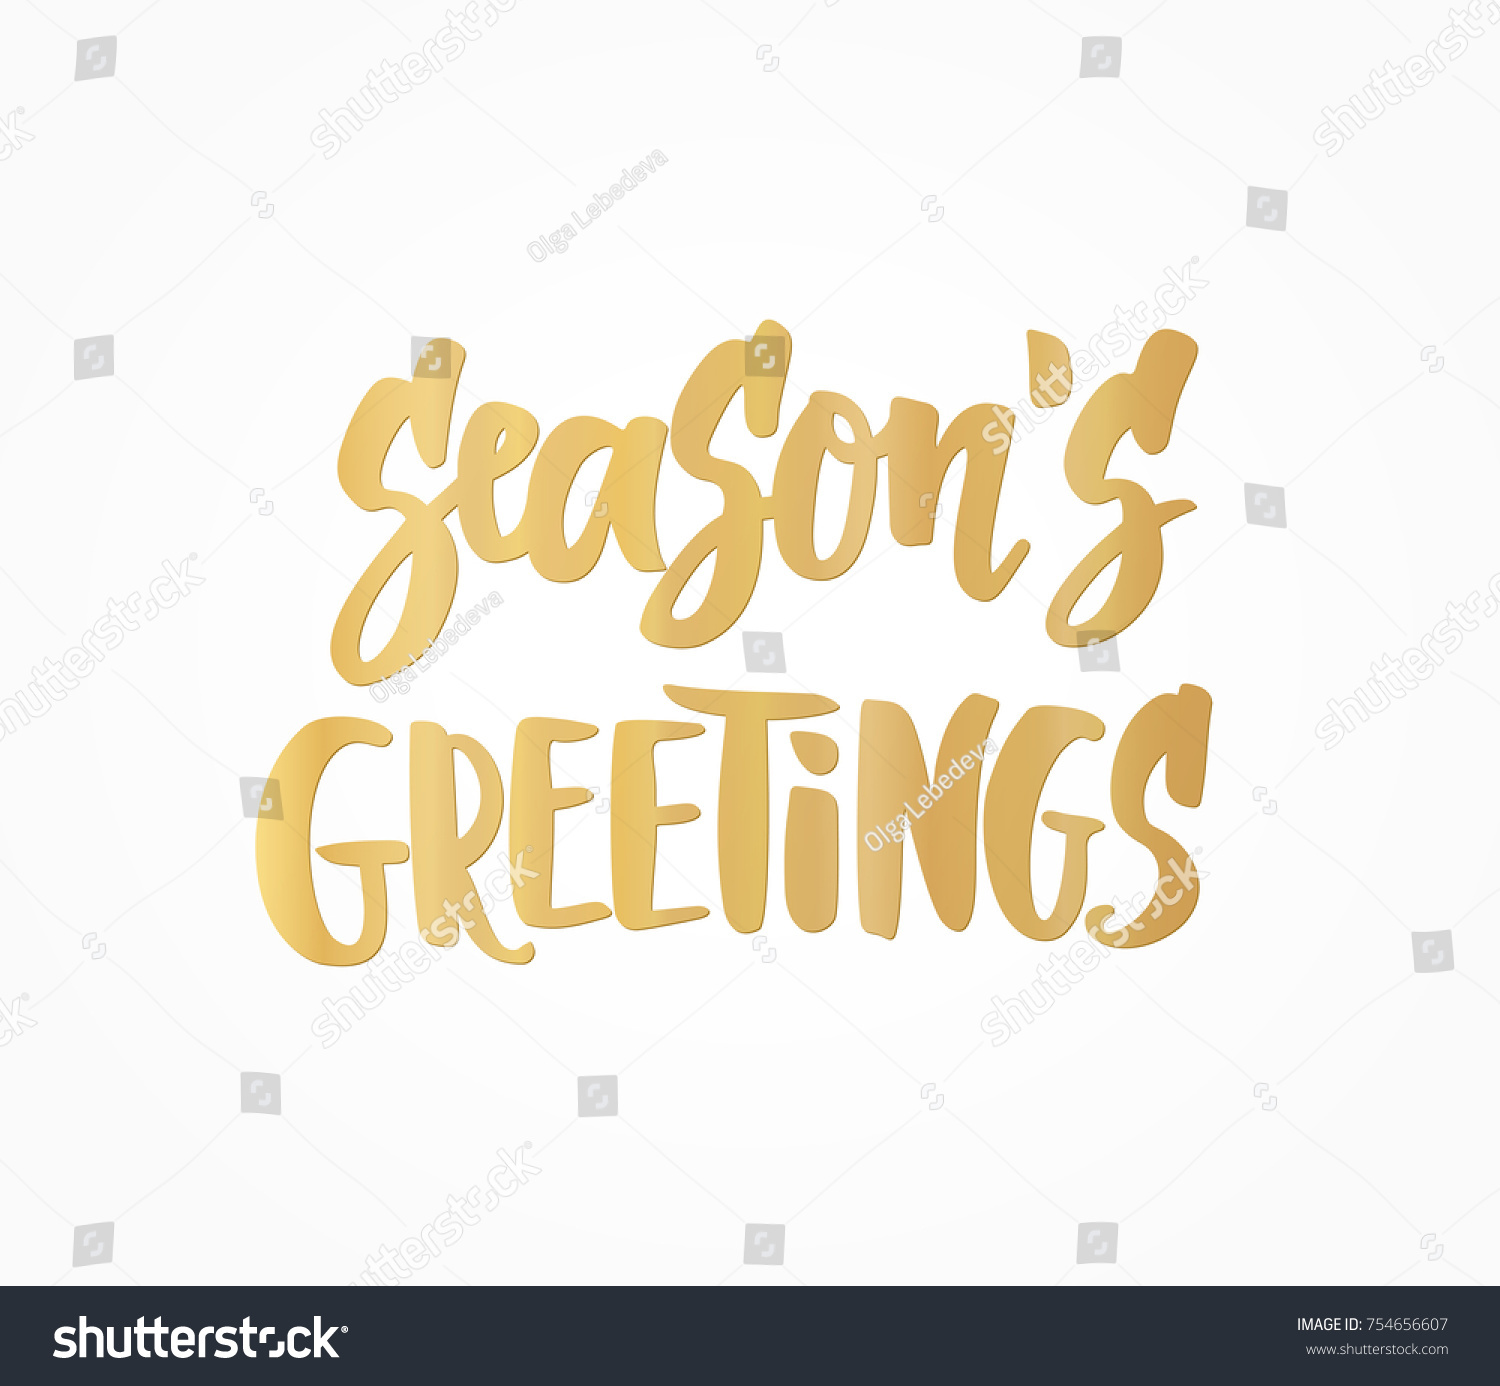 Seasons greetings text hand drawn lettering stock vector 754656607 seasons greetings text hand drawn lettering golden holiday quote on white background for kristyandbryce Images